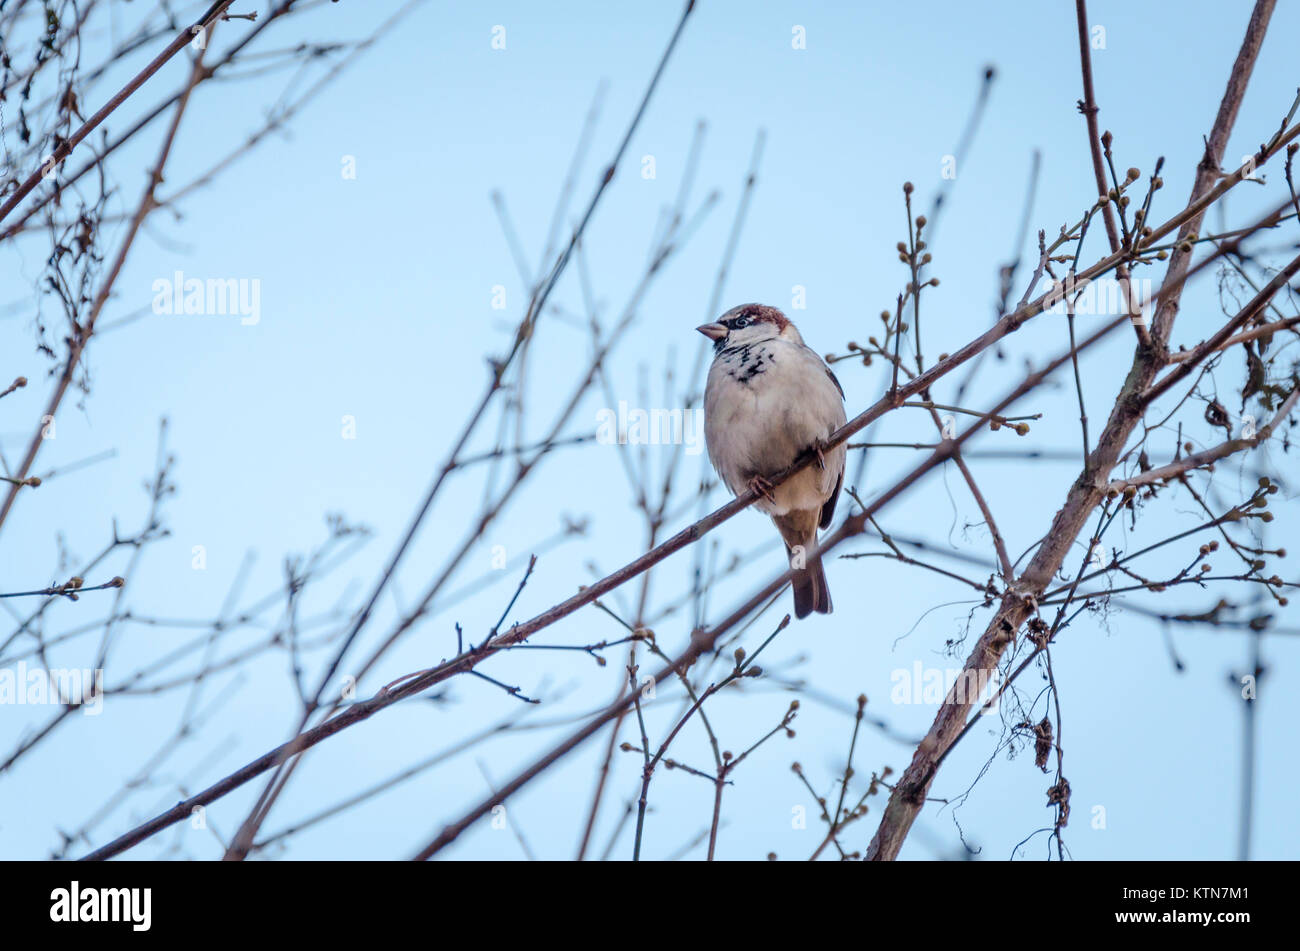 Male house sparrow, Passer domesticus, sat on a tree branch in Volkspark am Weinbergsweg, Berlin, Germany - Stock Image